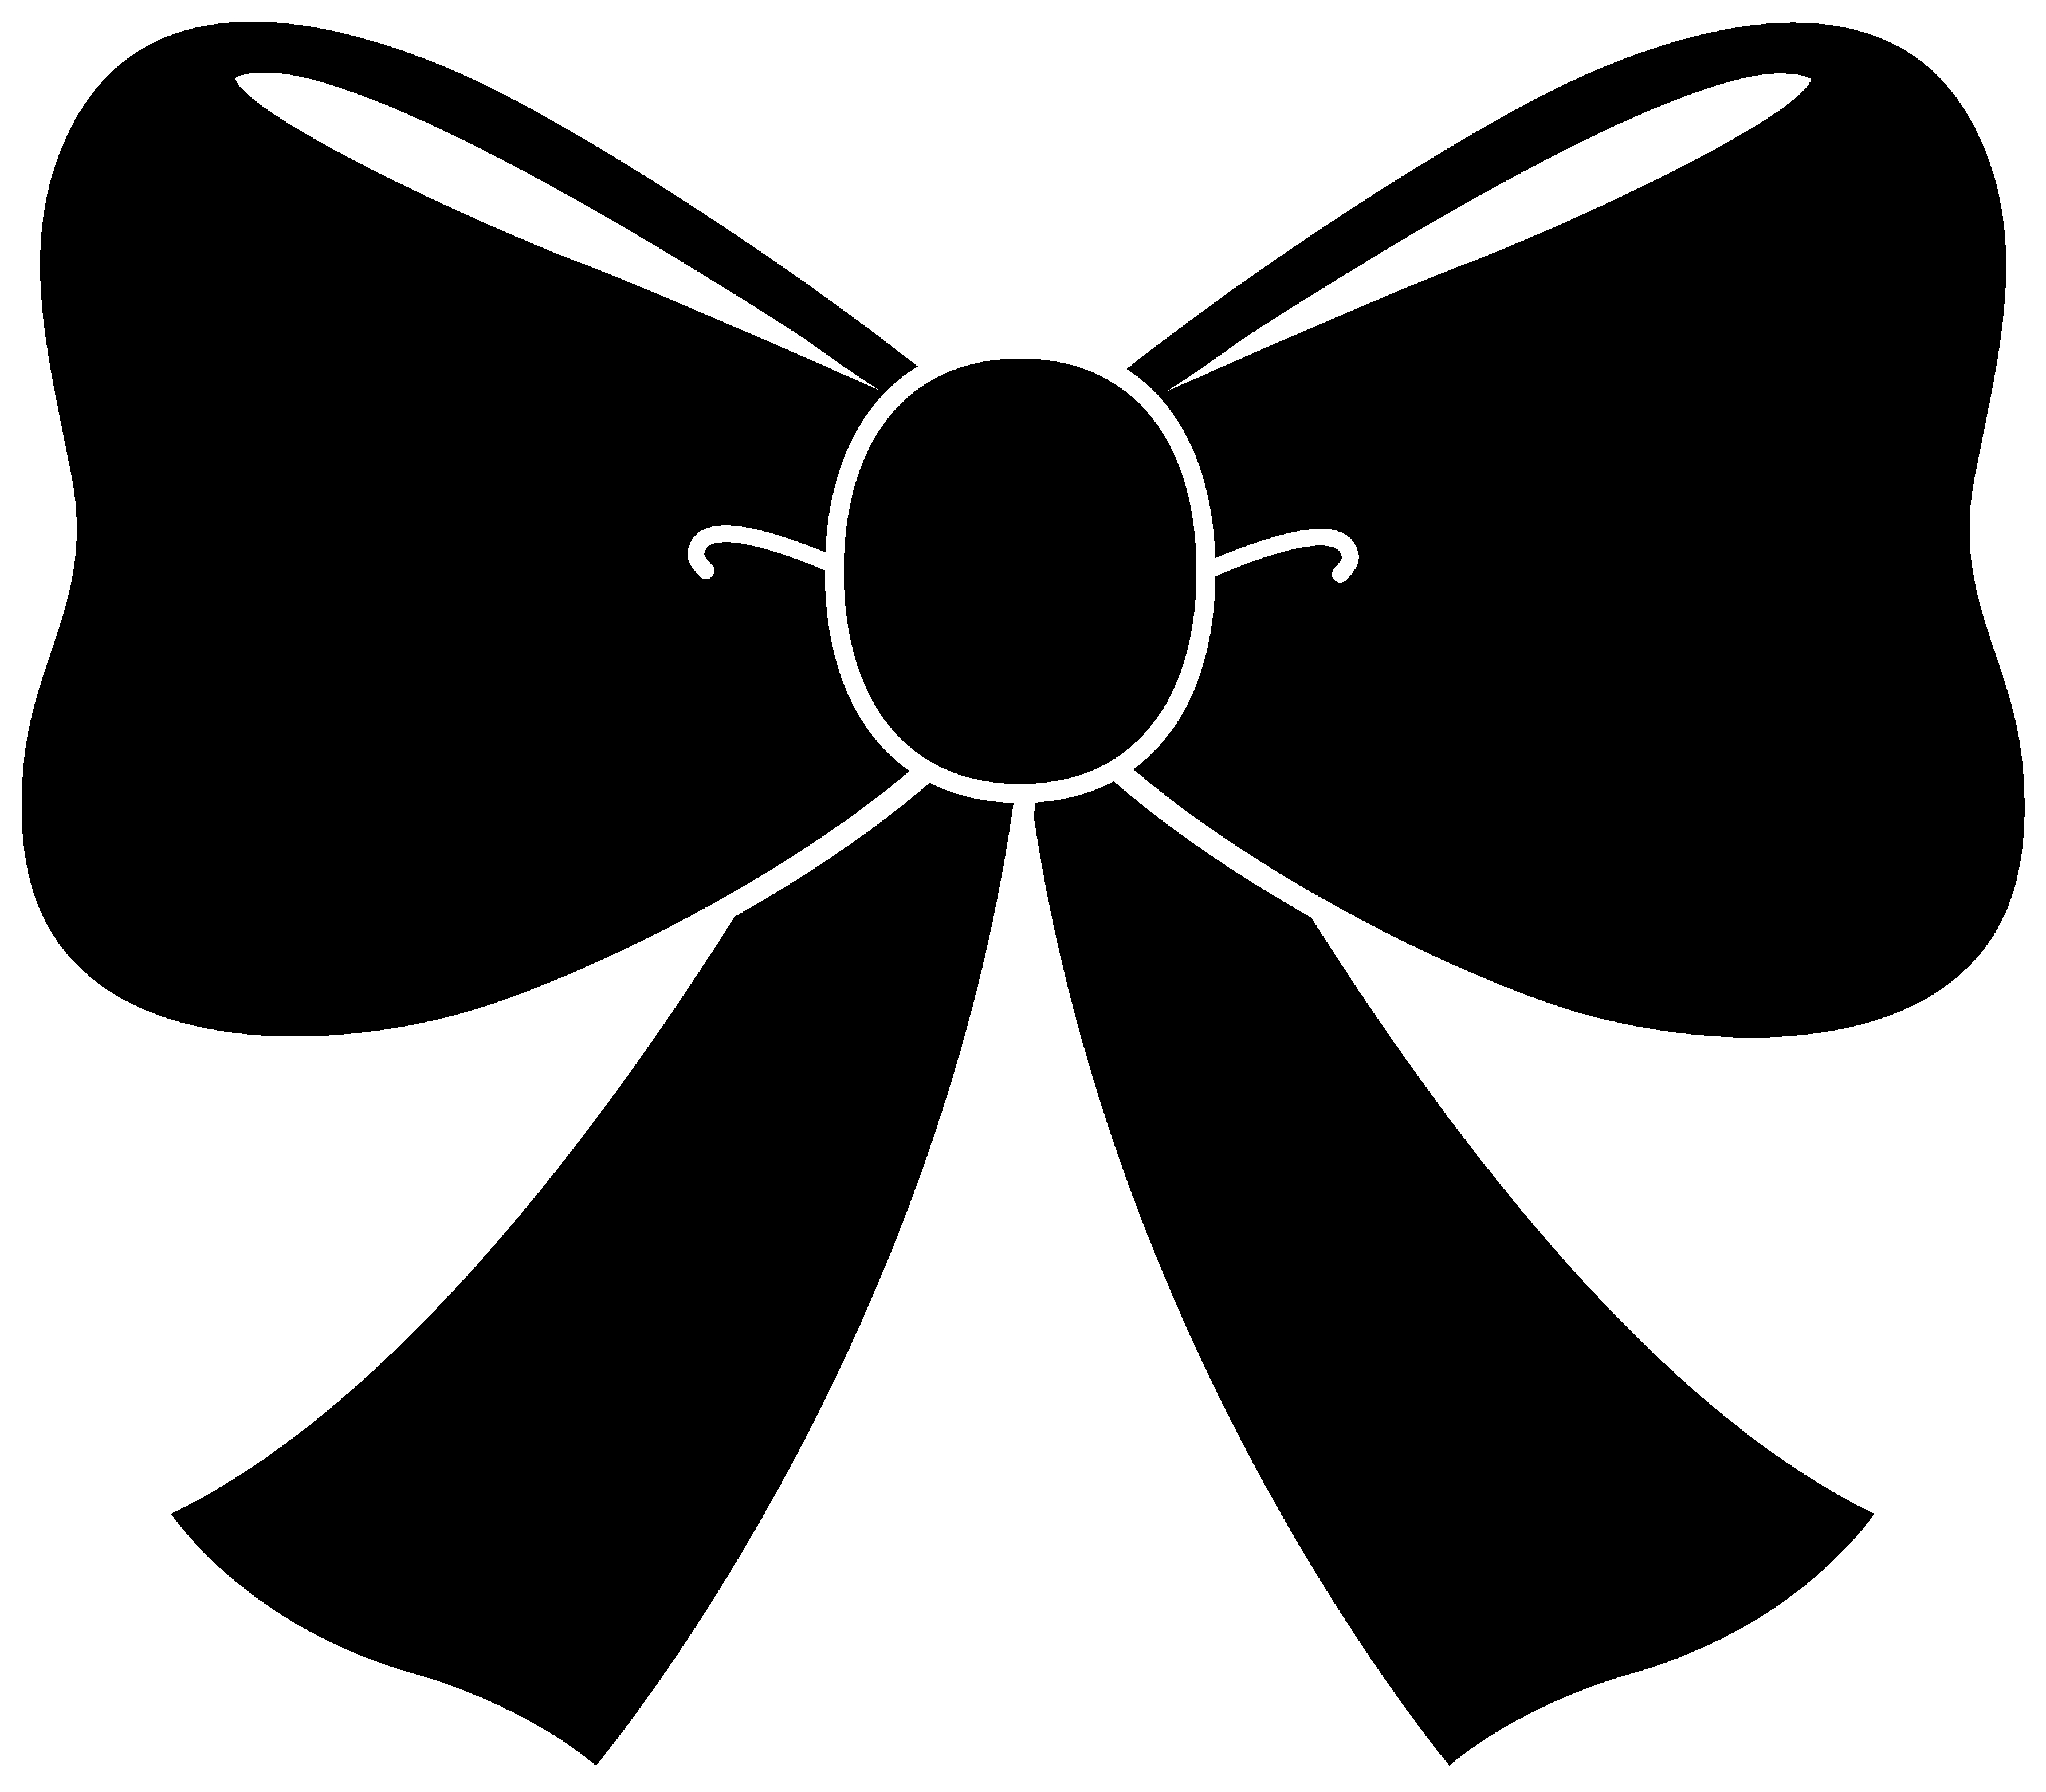 Unique cheer bow collection. Bows clipart cheerleading